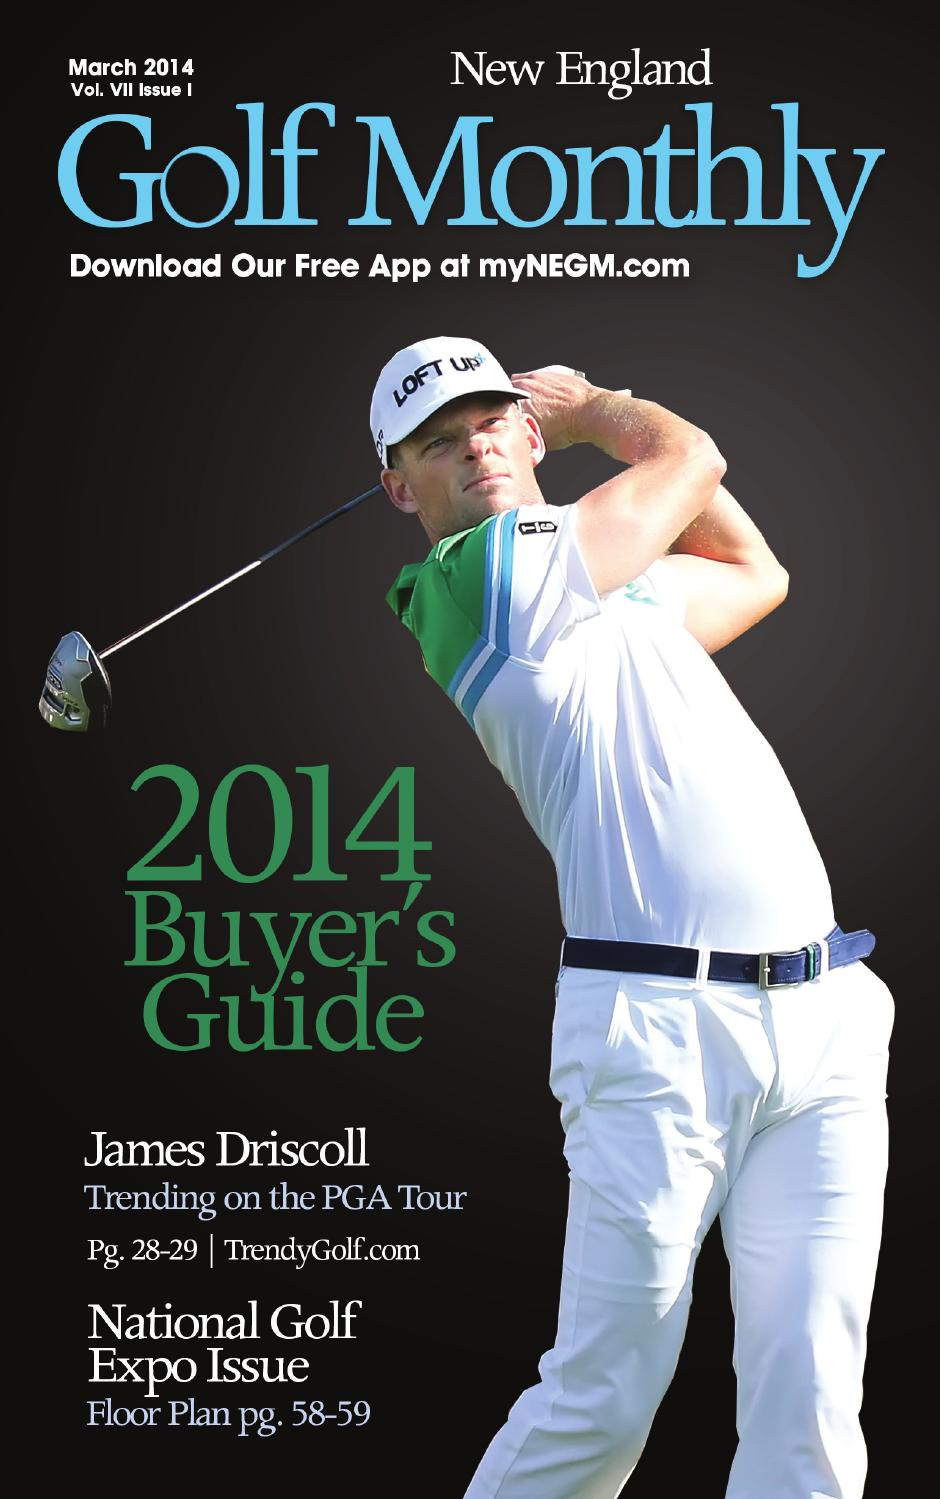 5c443c634 March 2014 by New England Golf Monthly - issuu